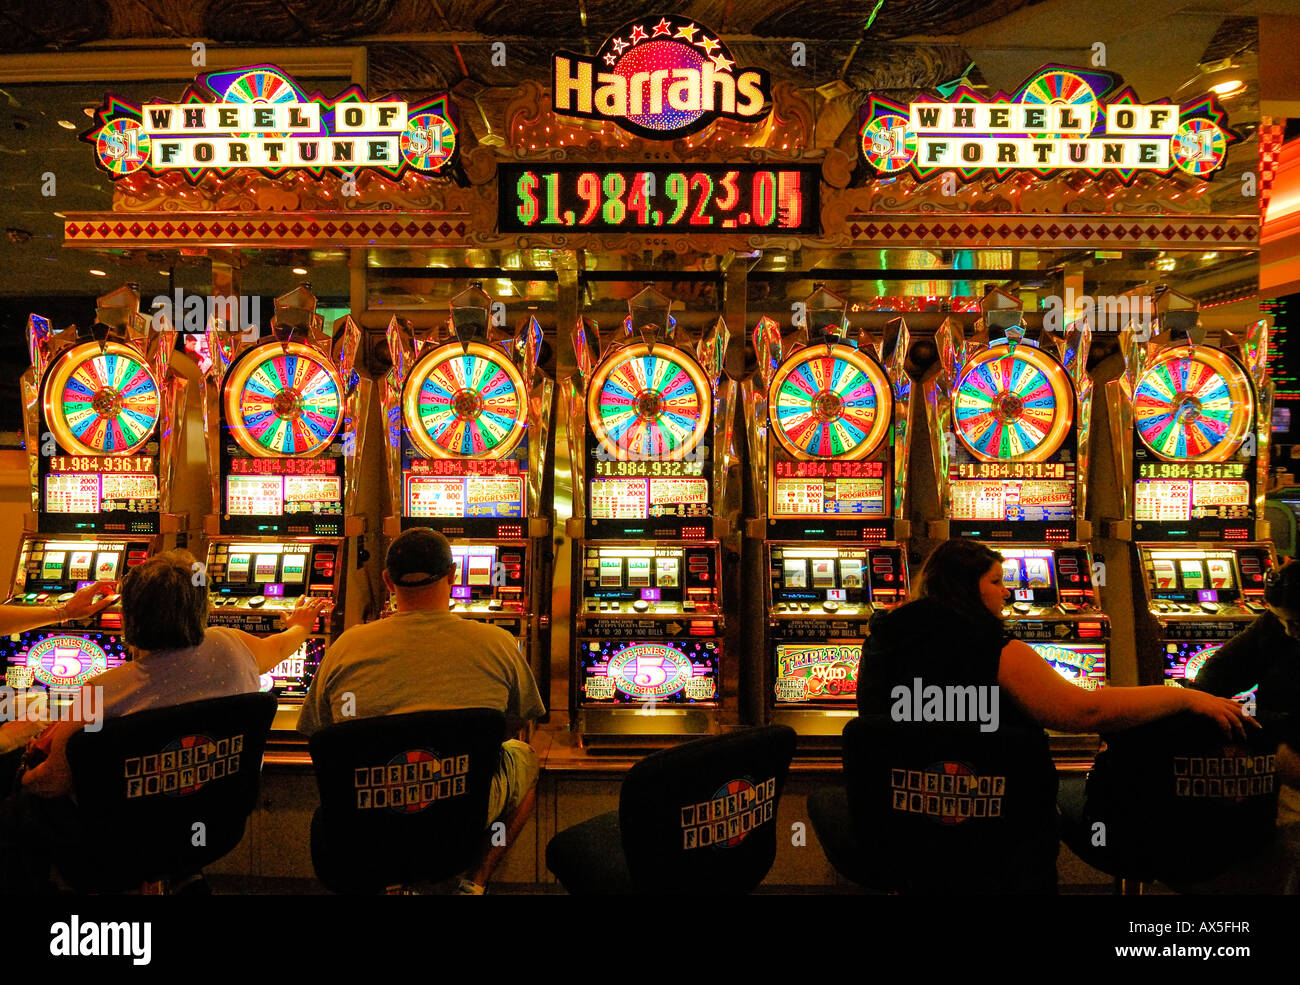 Casino city harrahs